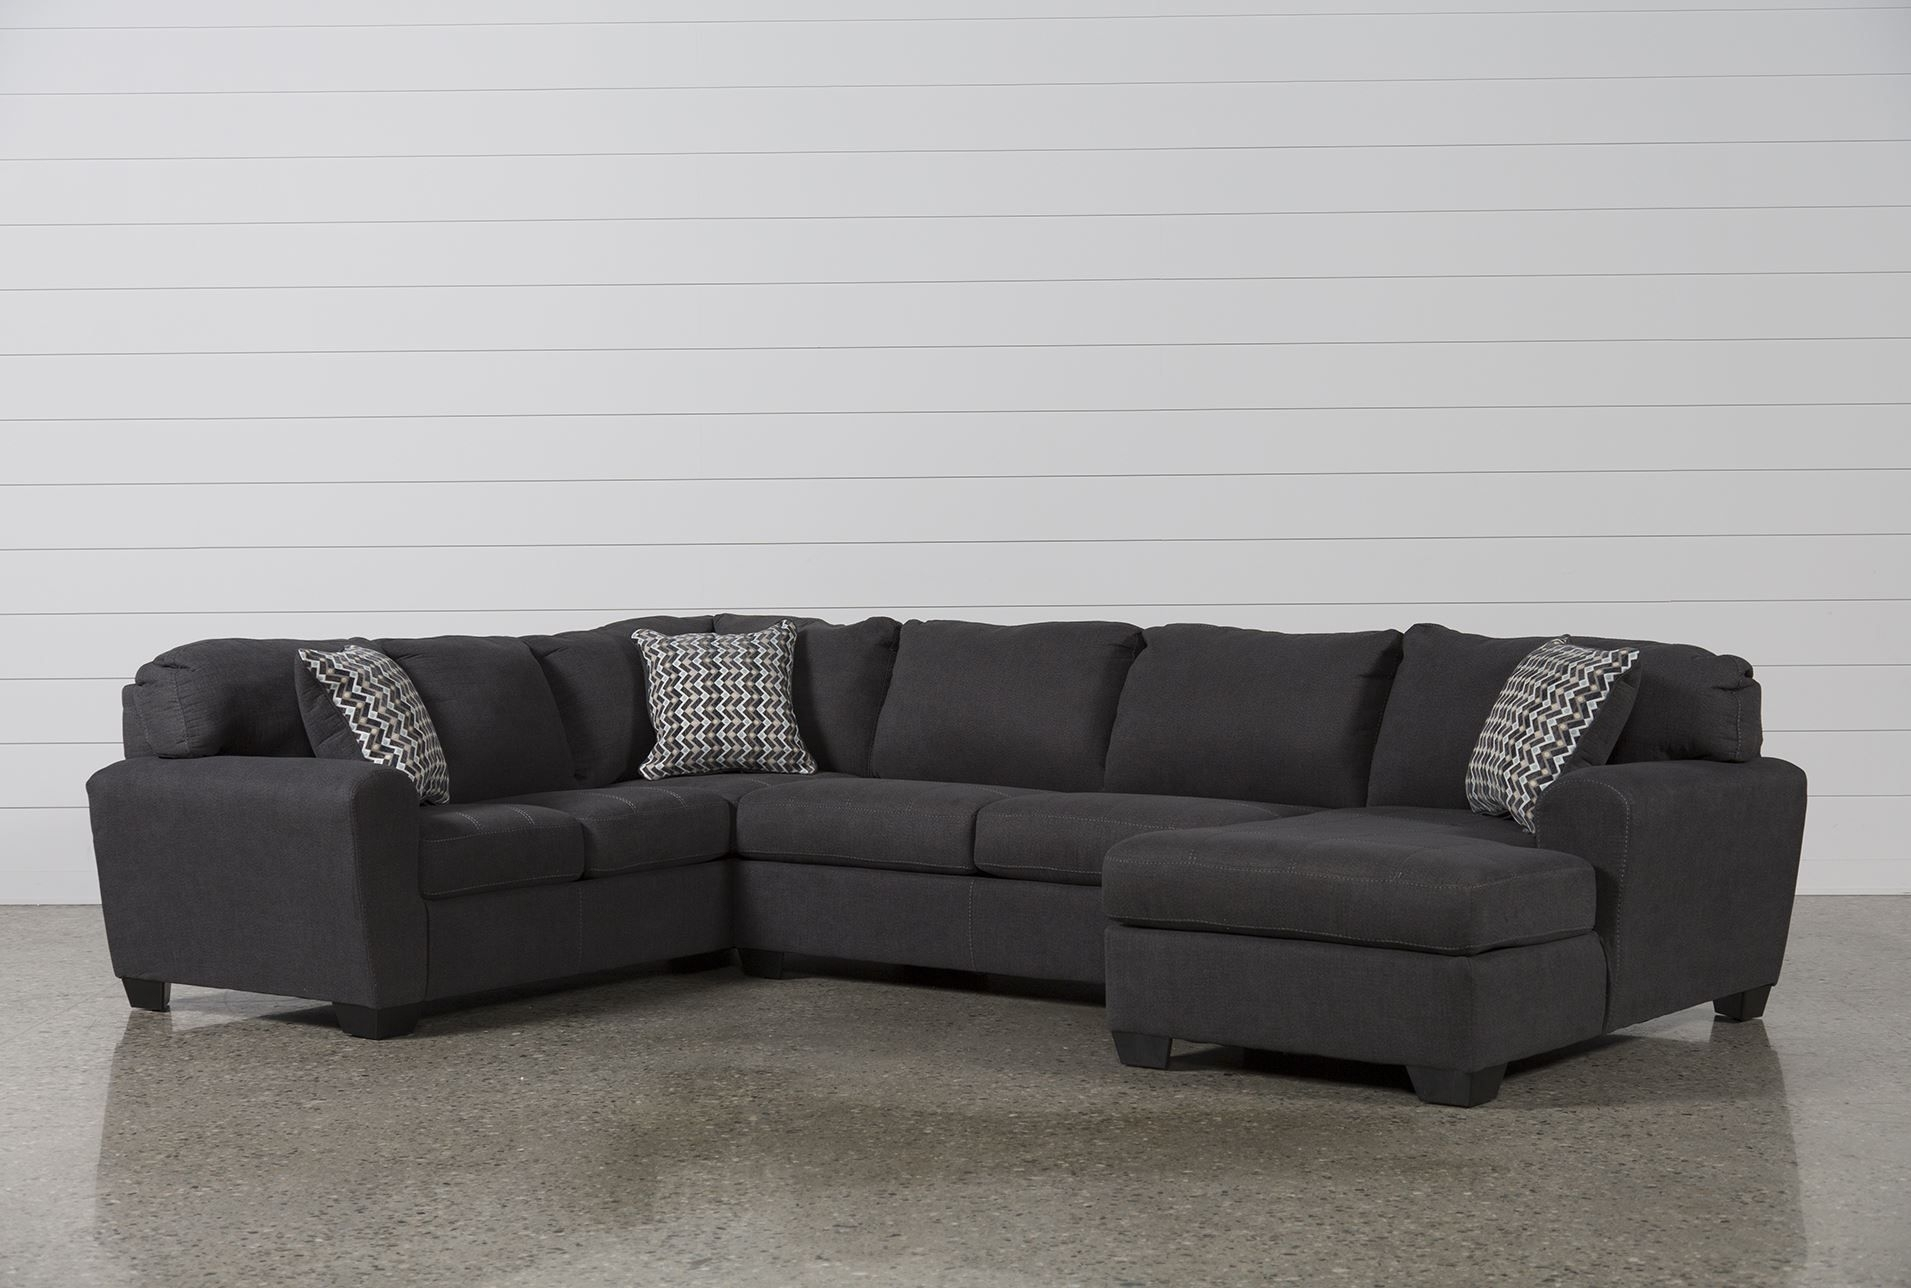 Sorenton Slate 3 Piece Sectional W/raf Chaise | Decorate in Harper Foam 3 Piece Sectionals With Raf Chaise (Image 28 of 30)